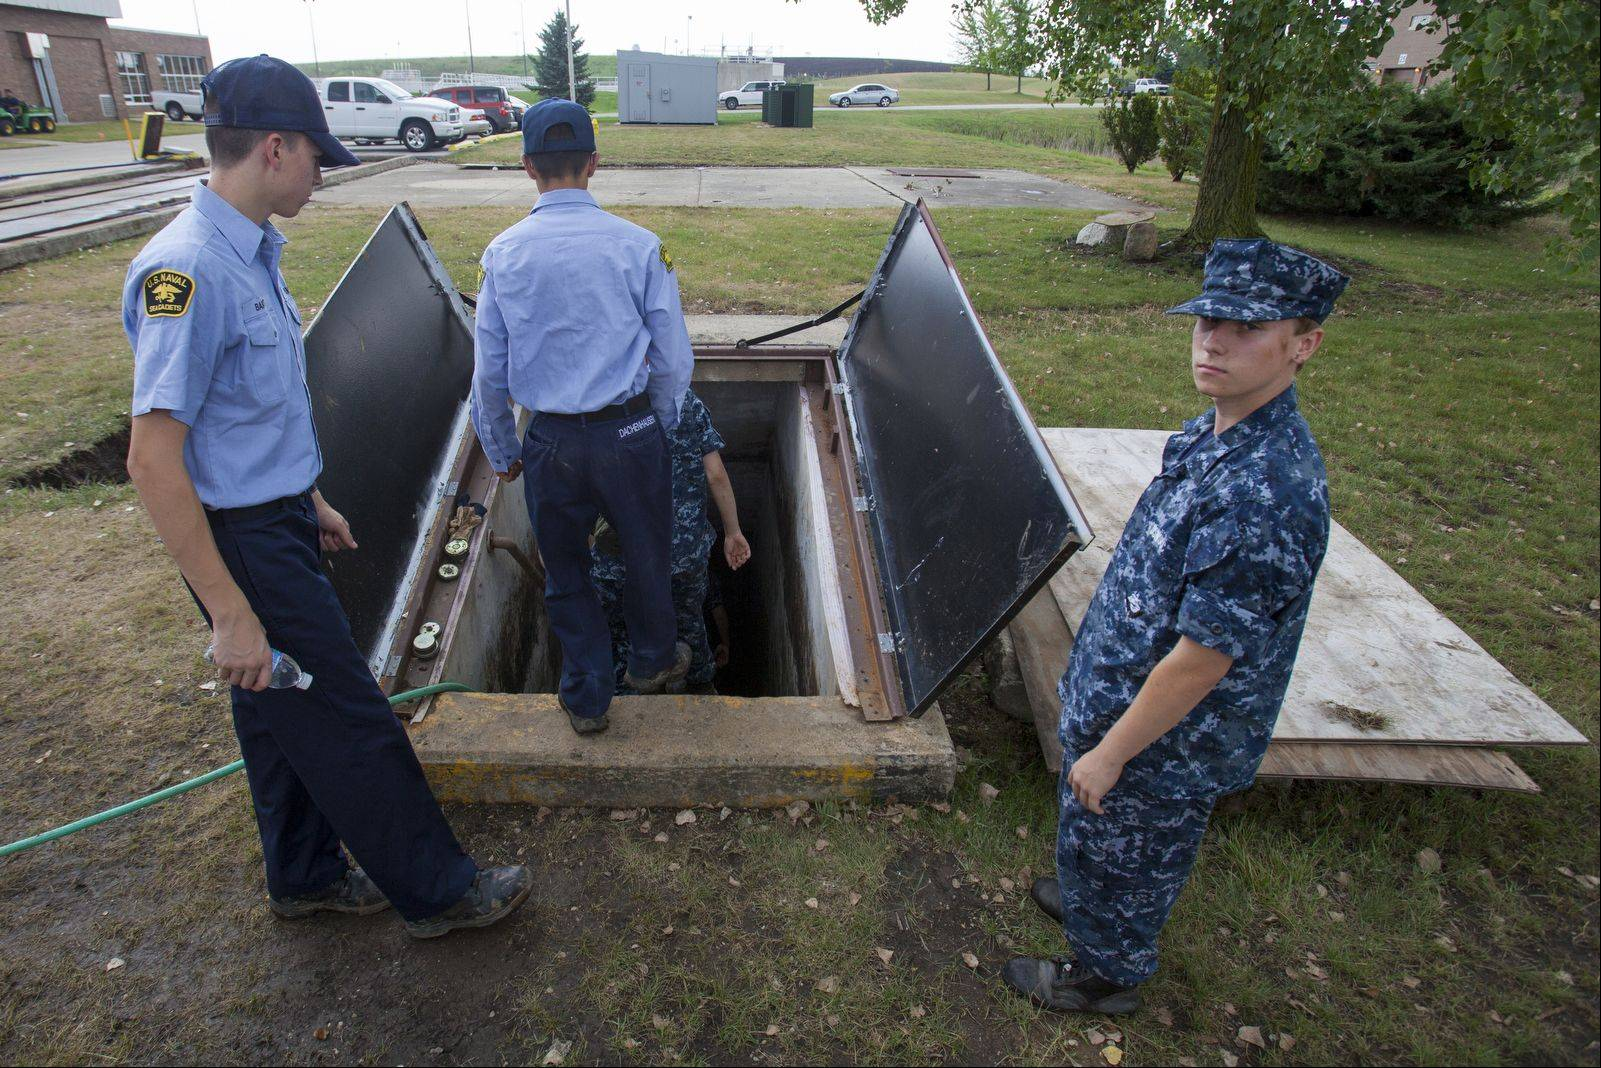 Sea Cadet Chase Lundmark waits for his fellow cadets to enter the missile magazine on the site of the former Nike missile magazine in Vernon Hills.